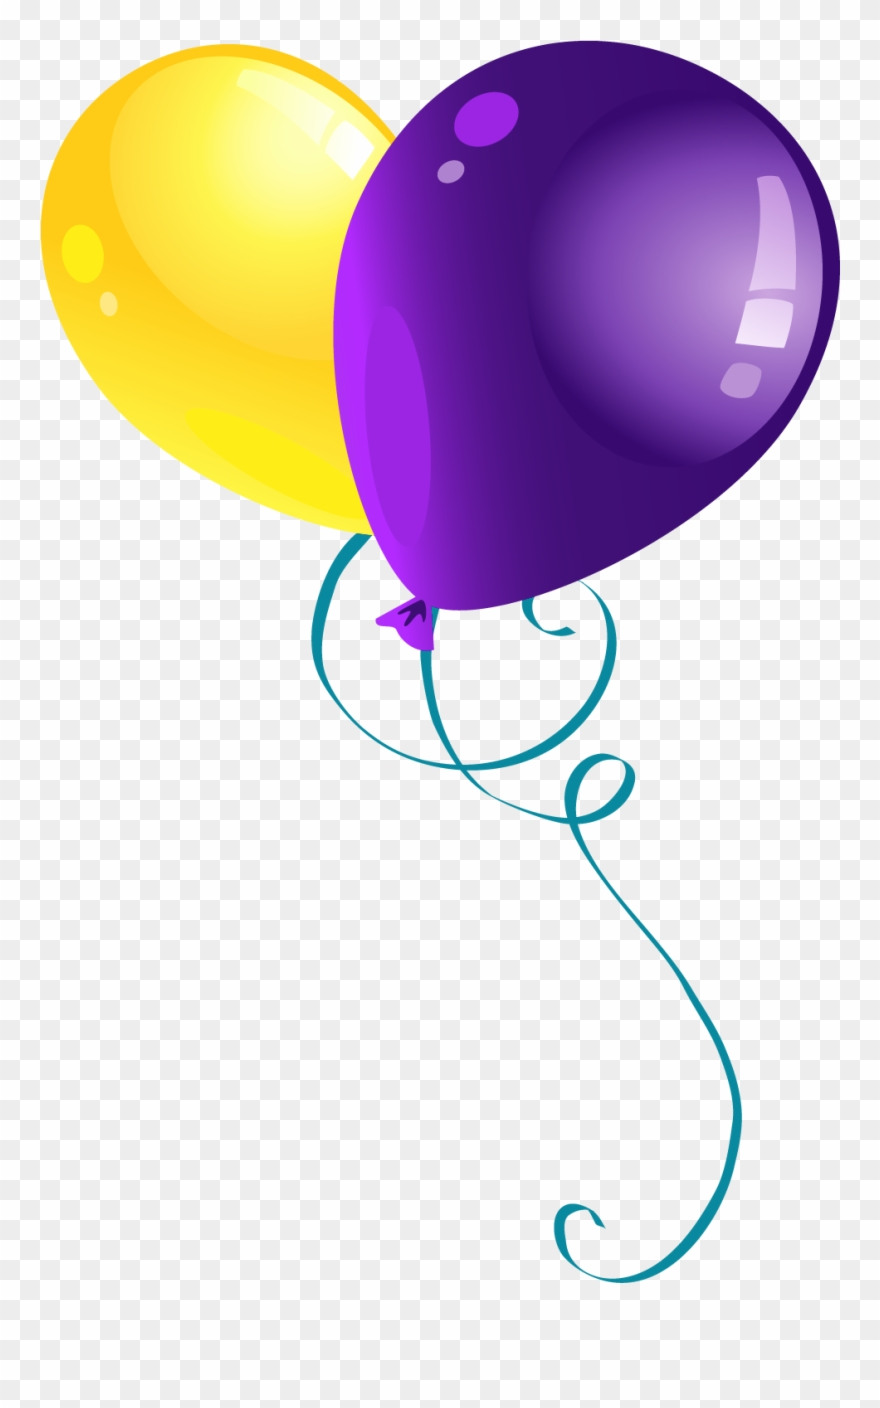 Download Free png December Anniversaries Dibujo Globos De Cumpleaños.